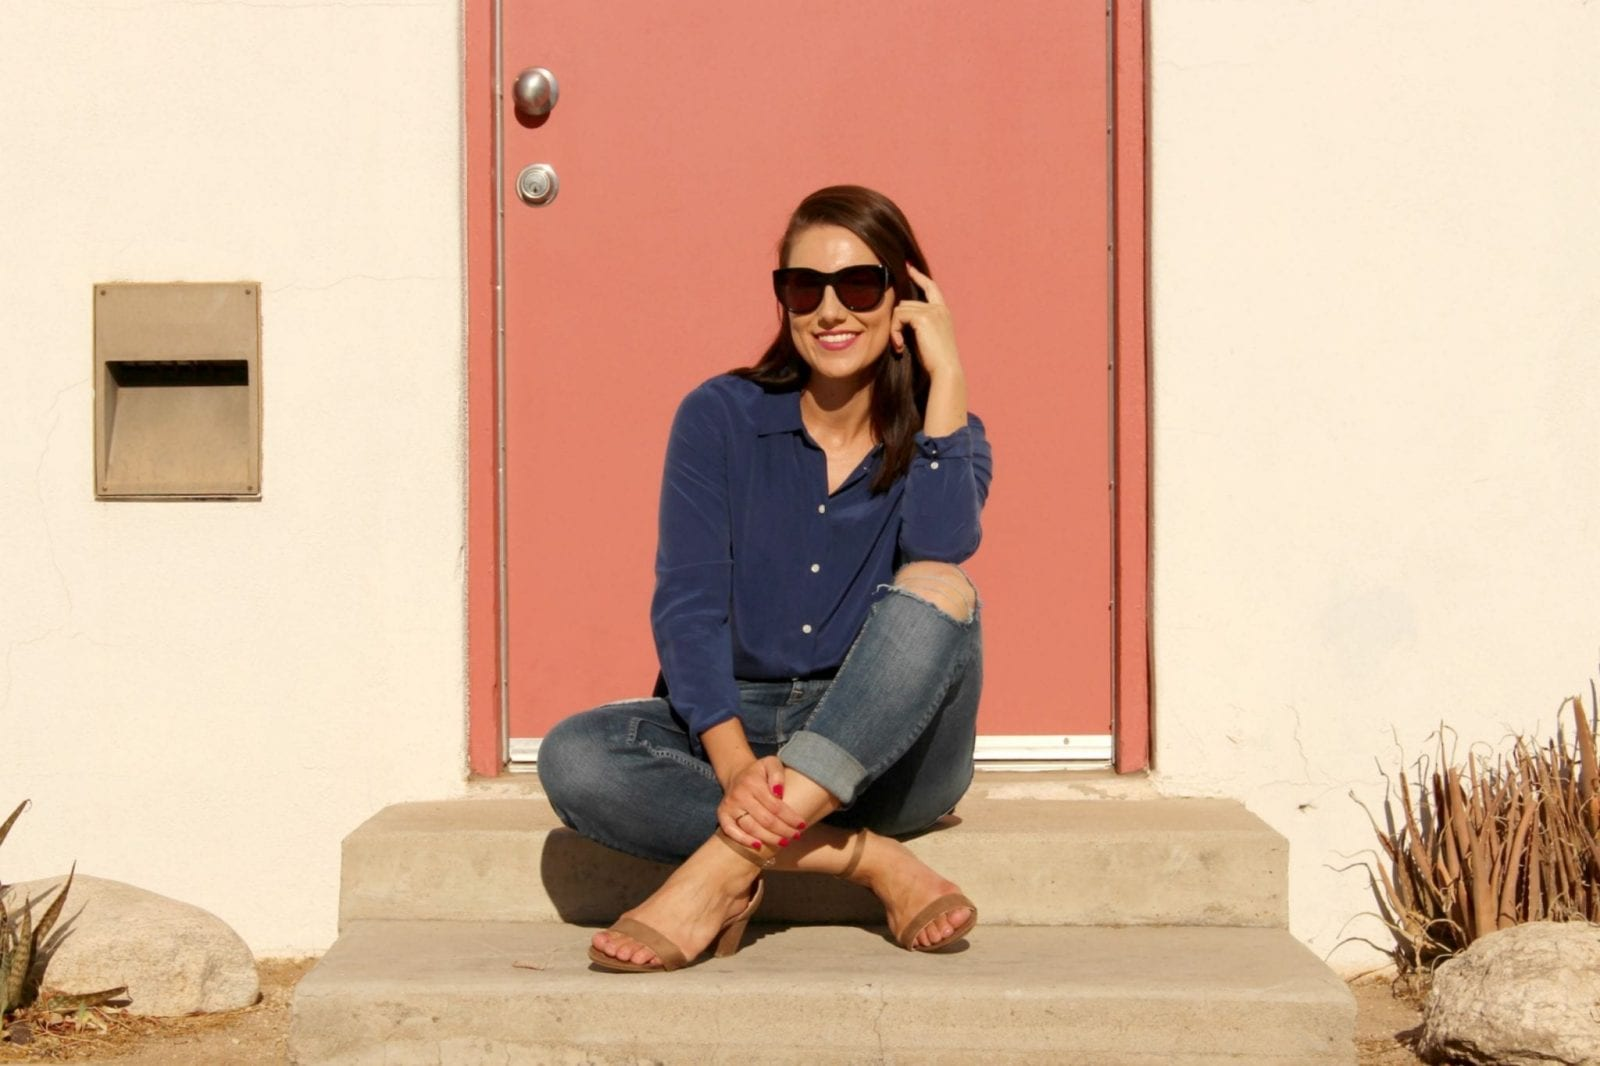 Rocking an Everlane blouse wiht blue jeans and ZooShoo sandals.